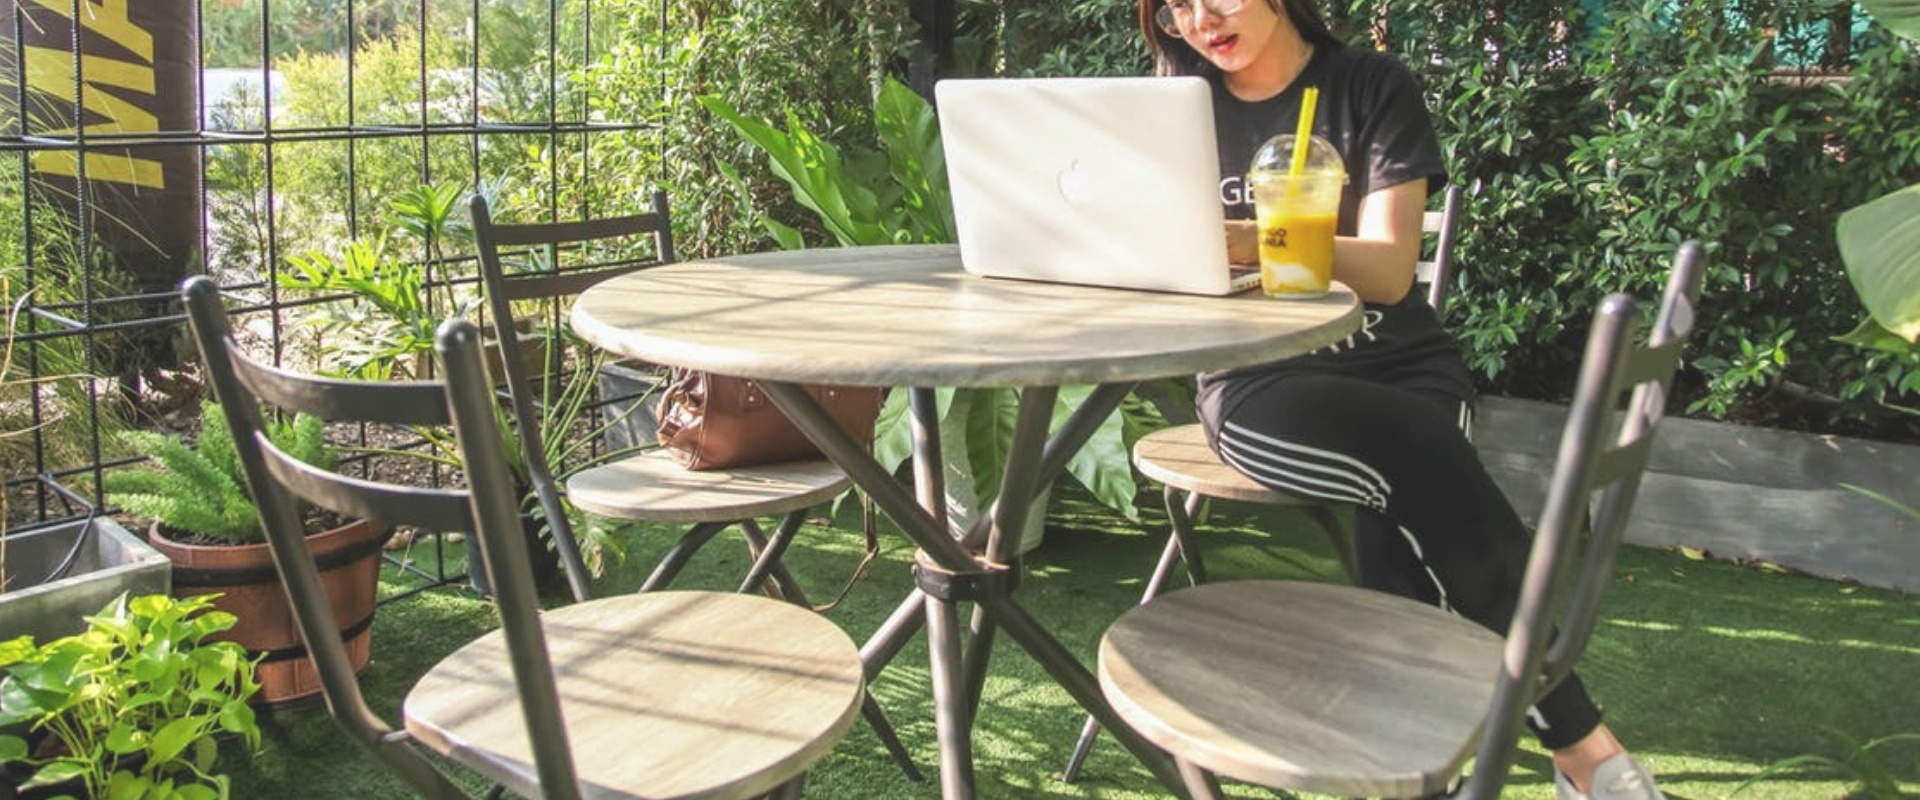 How Much Does it Cost to be a Digital Nomad in Thailand?